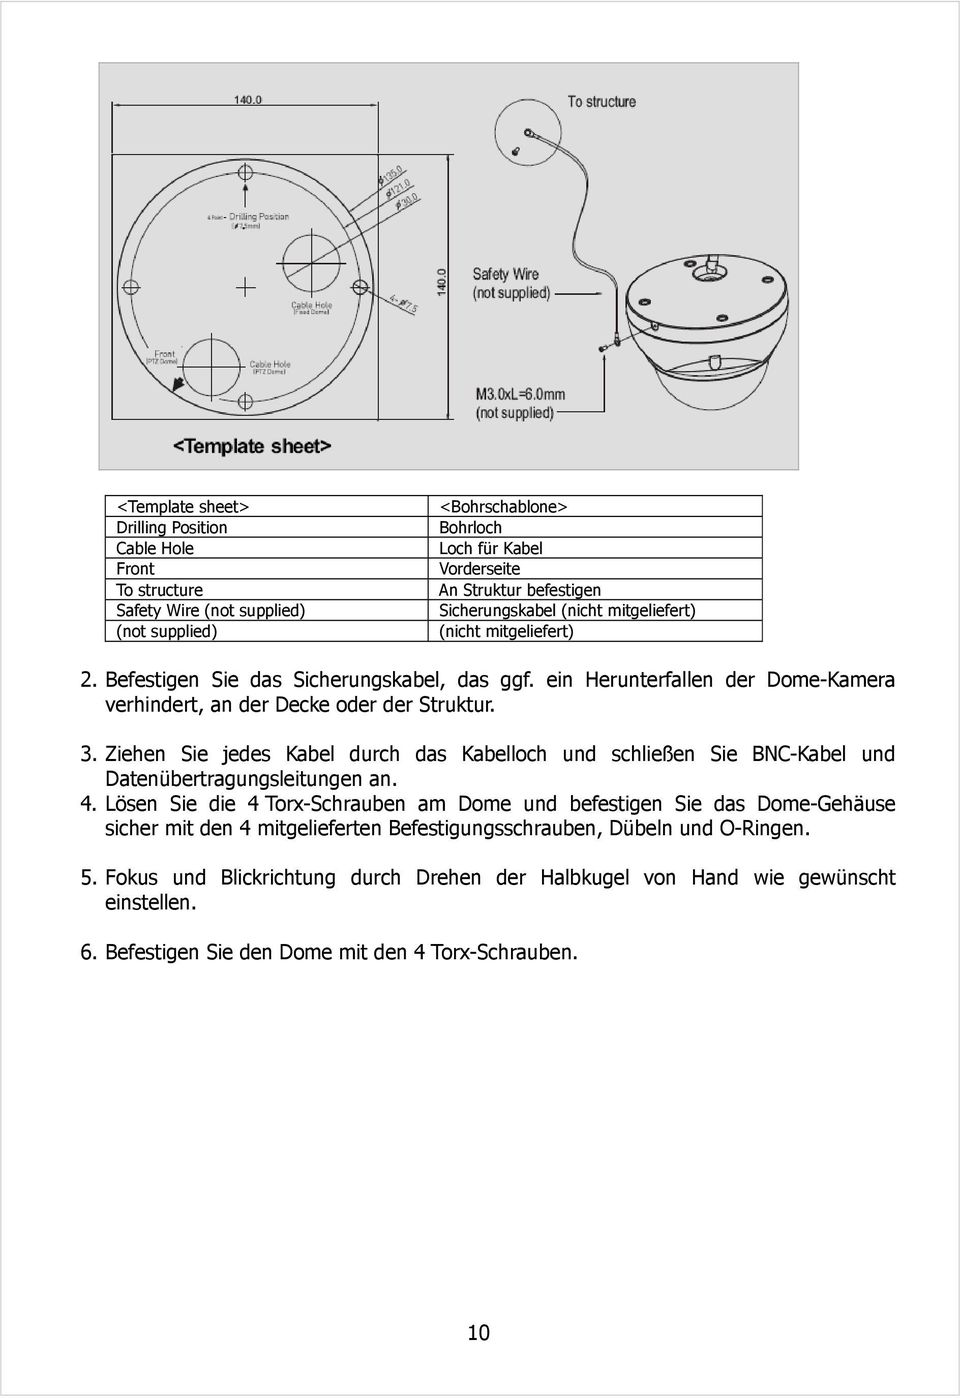 vandalensichere dome netzwerk kamera betriebsanleitung deutsche version 1 0 modell nld pdf. Black Bedroom Furniture Sets. Home Design Ideas